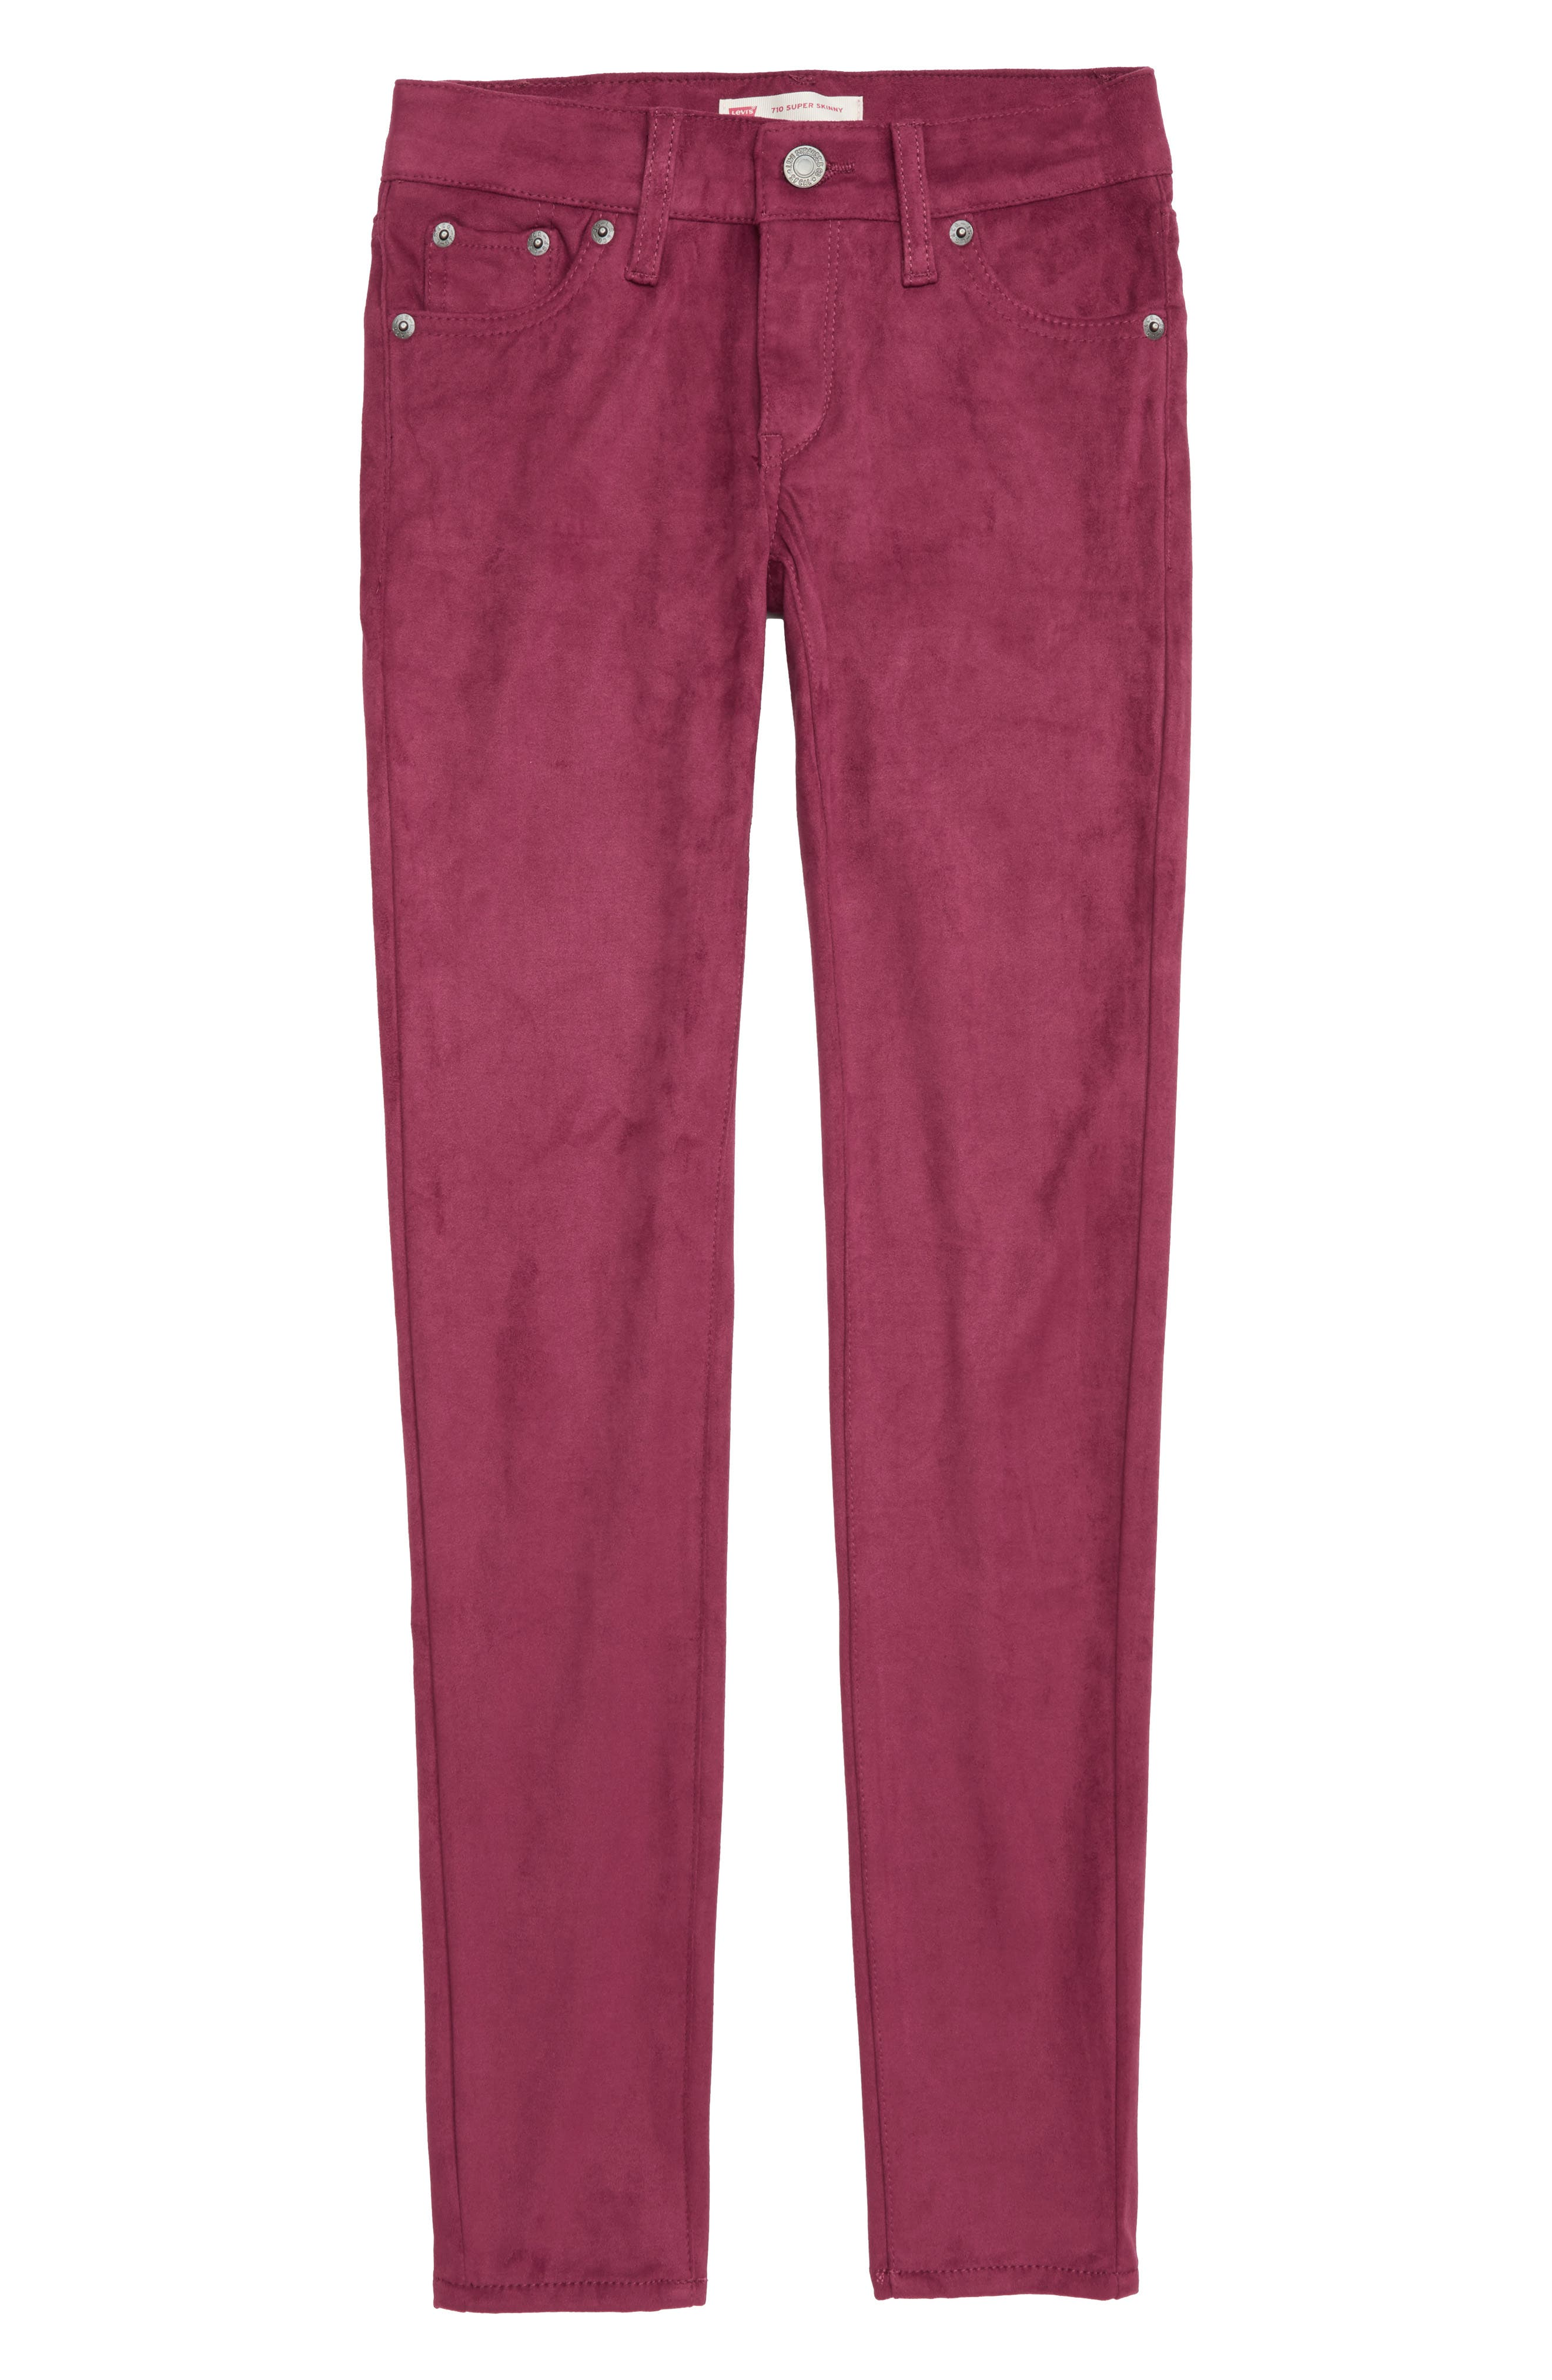 710<sup>™</sup> Super Skinny Faux Suede Jeans,                         Main,                         color, BEET RED